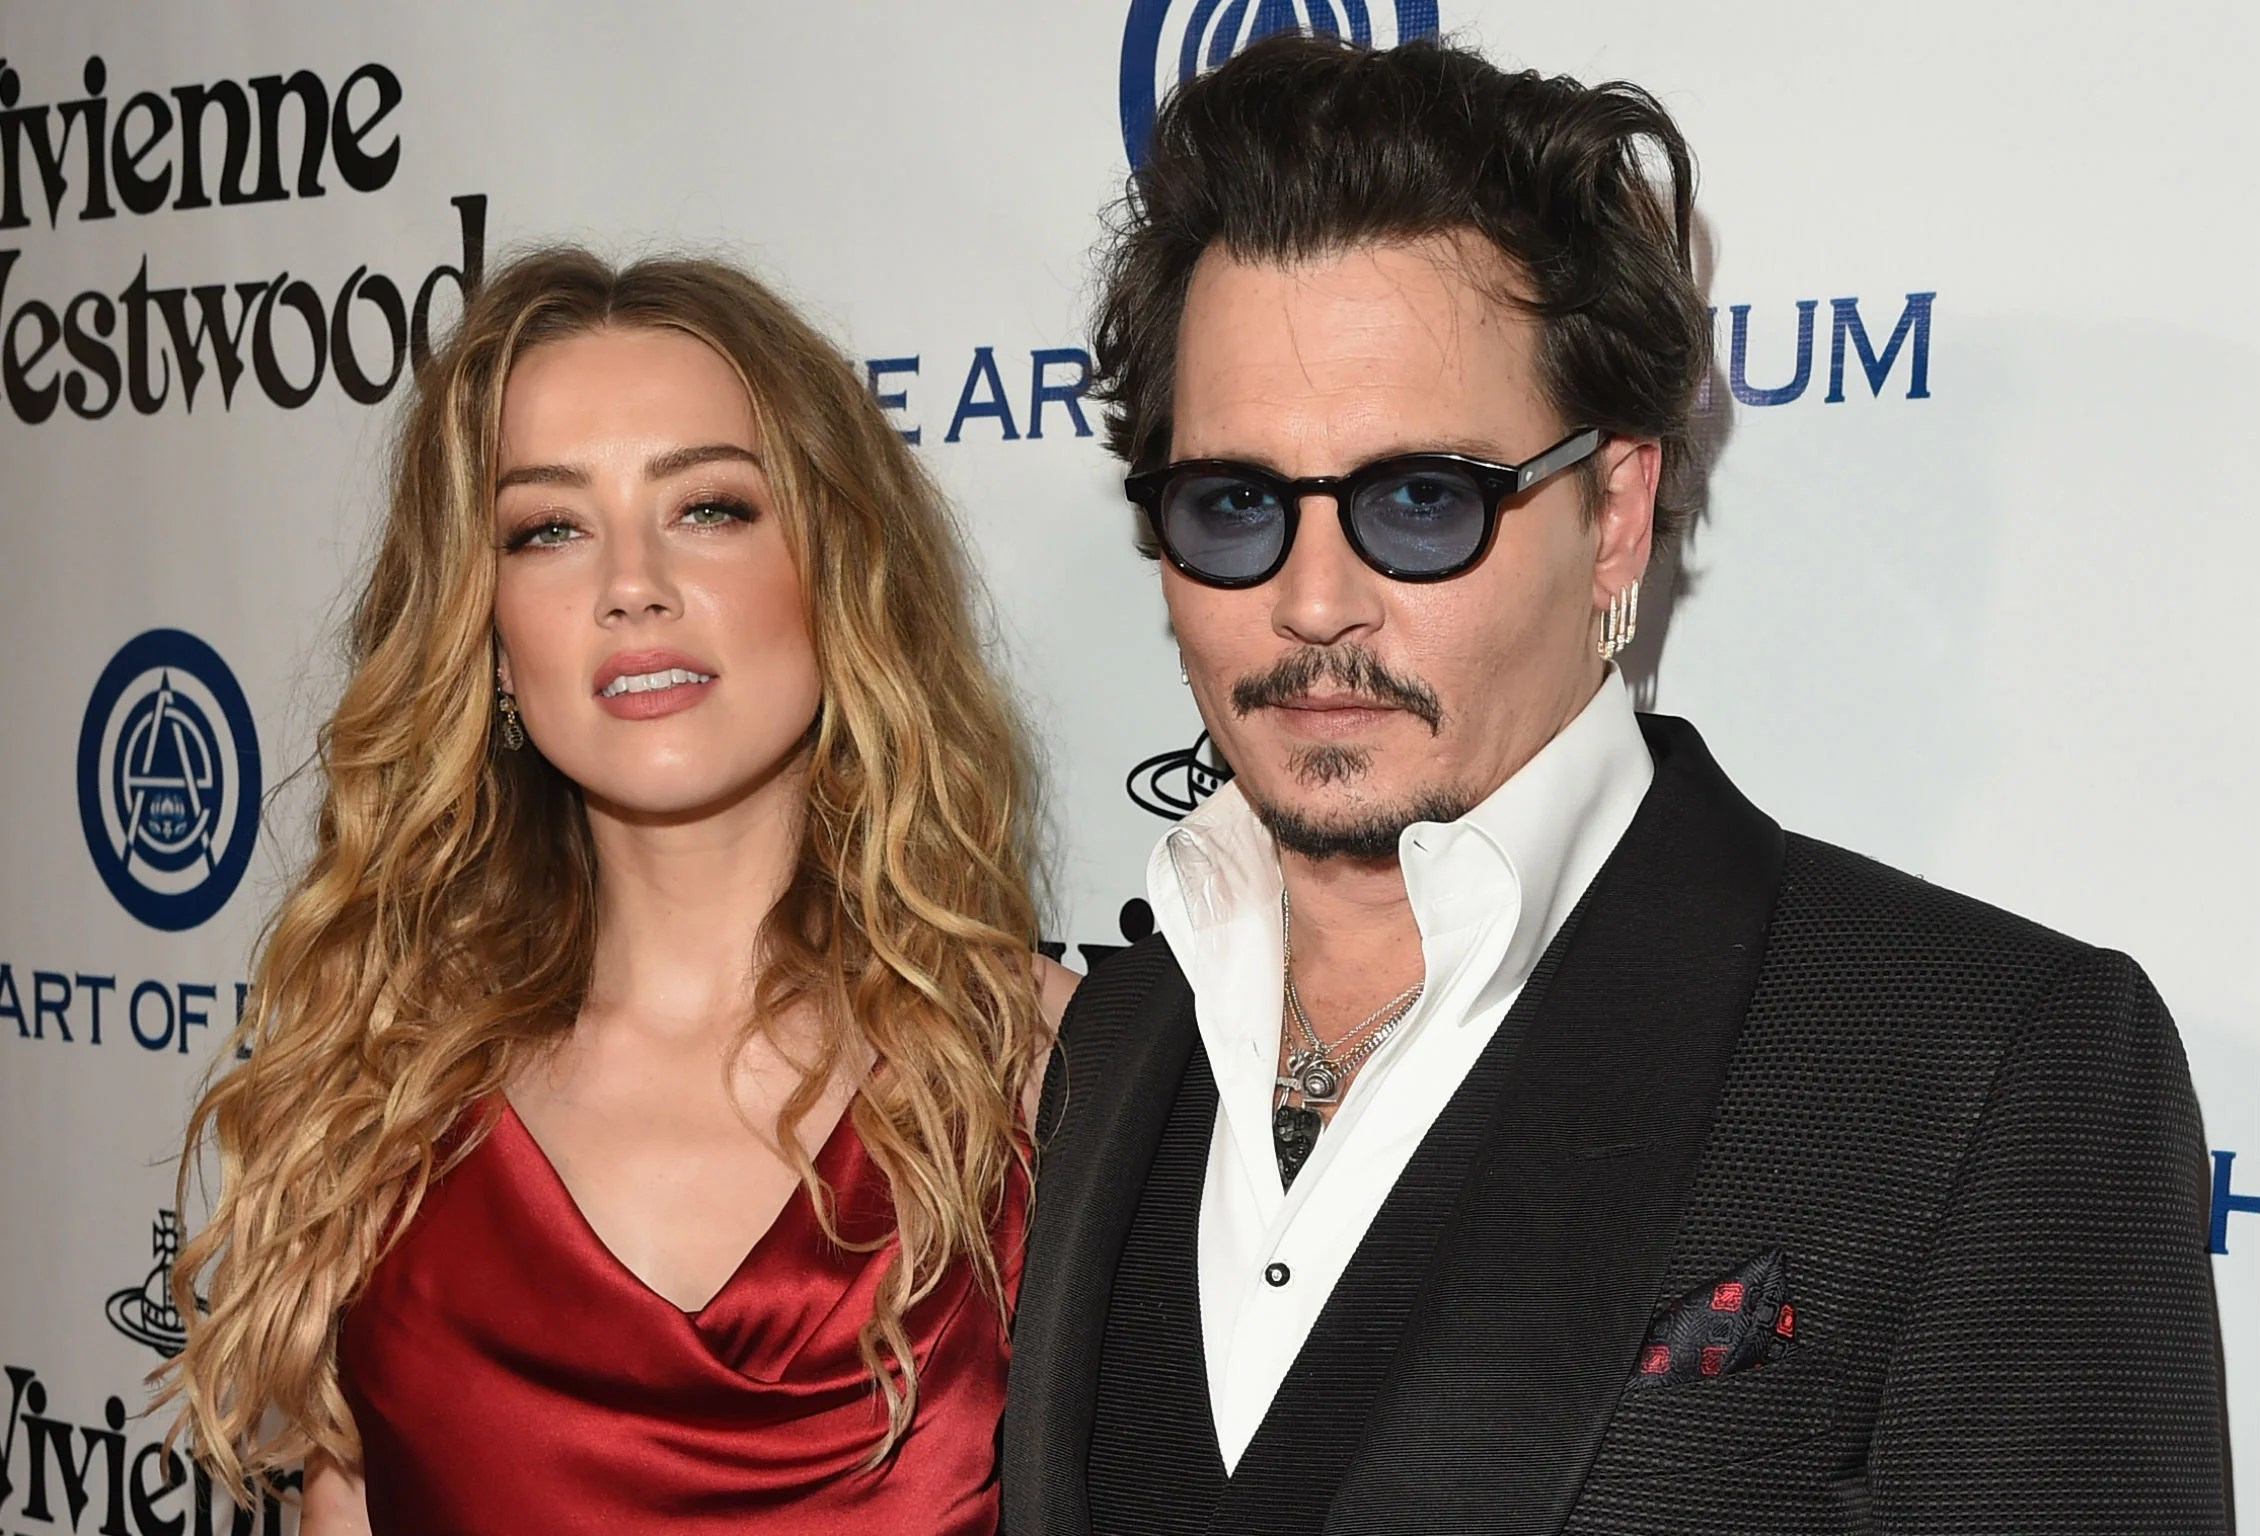 Vanessa Paradis dismisses Amber Heard s domestic violence claims     Heard appeared in court  with a visible bruise on her face  alleging that  Depp